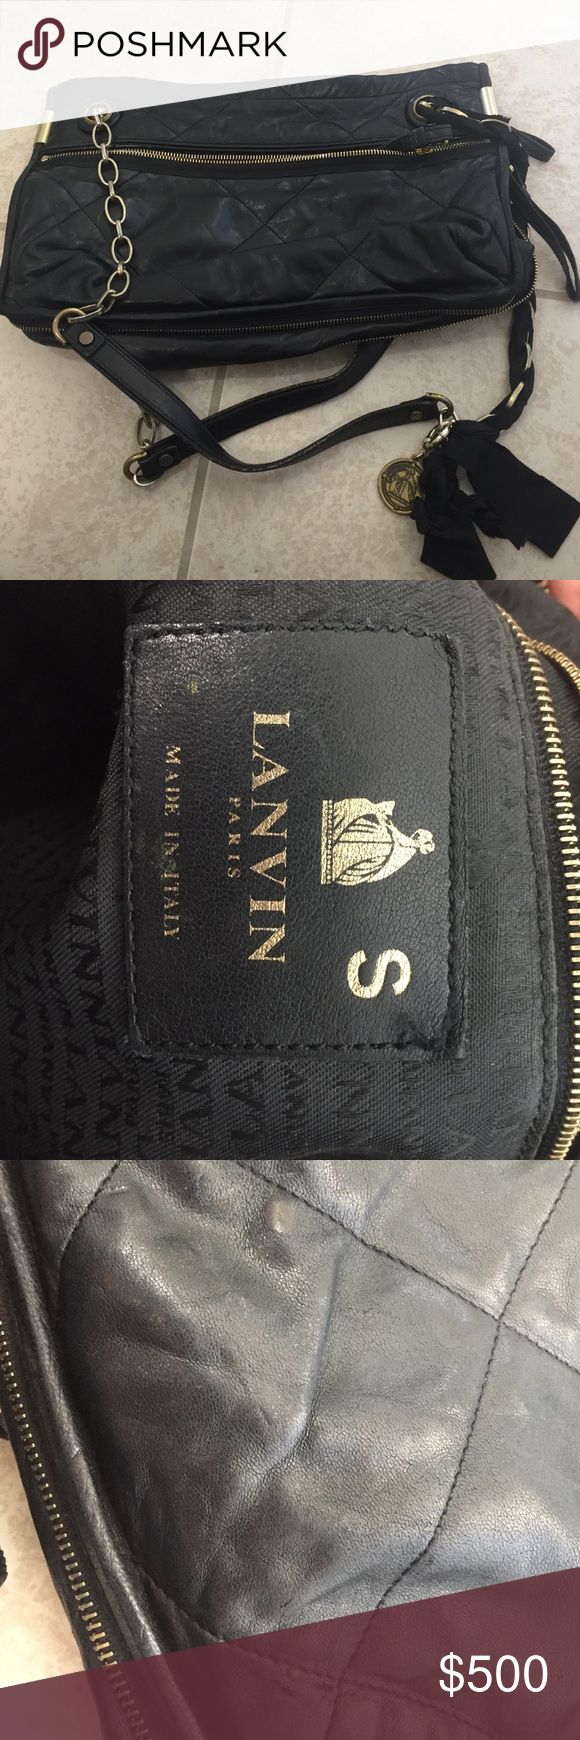 """Lanvin Sample Black Quilted Leather Amalia Md used Amalia Medium Shoulder Bag- used. Genuine, from Lanvin, but was a sample used for the Neiman Marcus online photographs only, purchased at a sample sale. This is noted with the """"s"""" on the inside tag. Quilted lamb skin. The hang tag is worn and I untied some of the black ribbon woven in the straps. Gold tone hardware that has somewhat rubbed off on the straps from my use so it looks gold/silvery. Small scuffs. Ink stain on back in pics. Top…"""